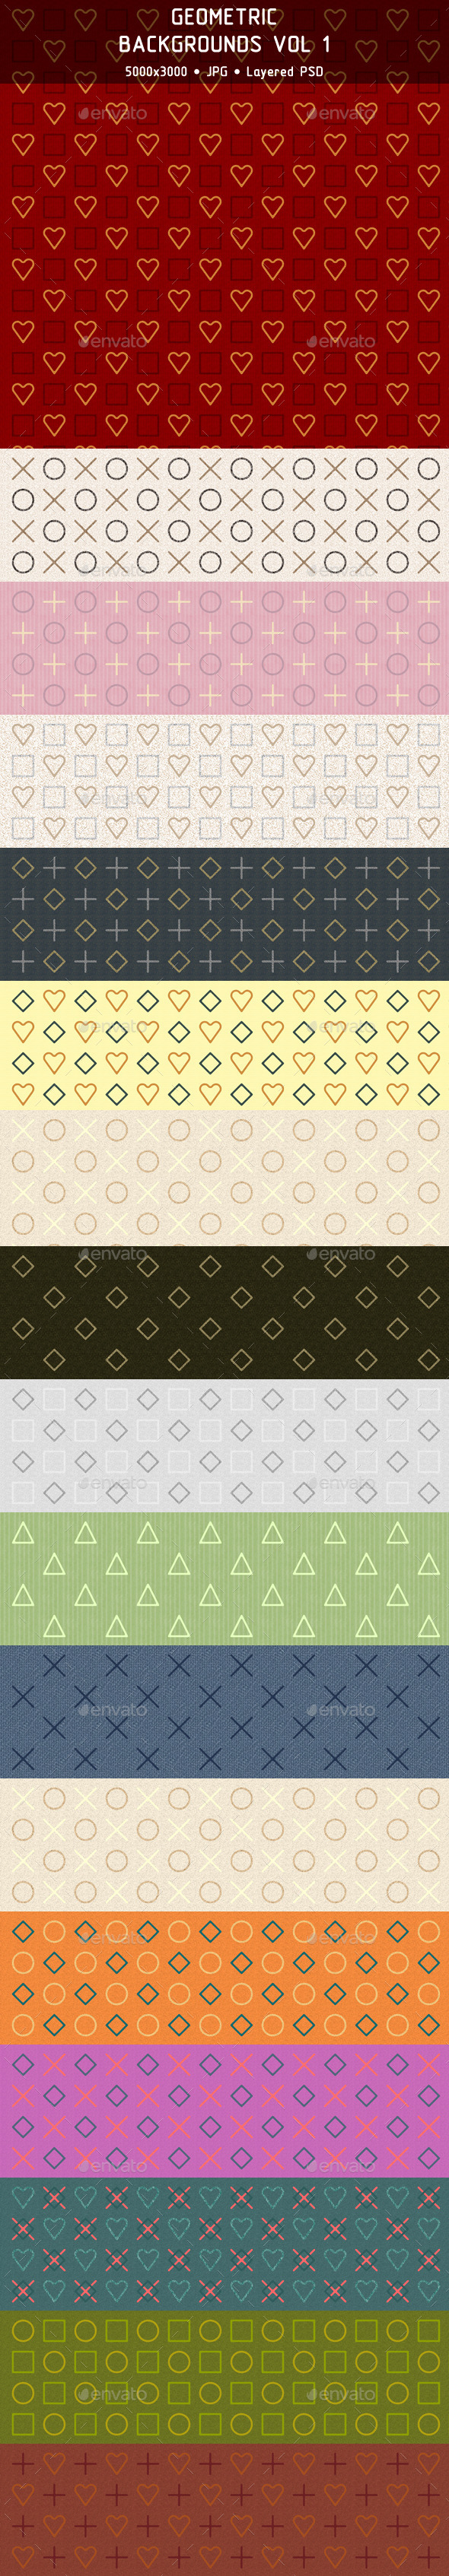 Geometric Backgrounds Vol 1